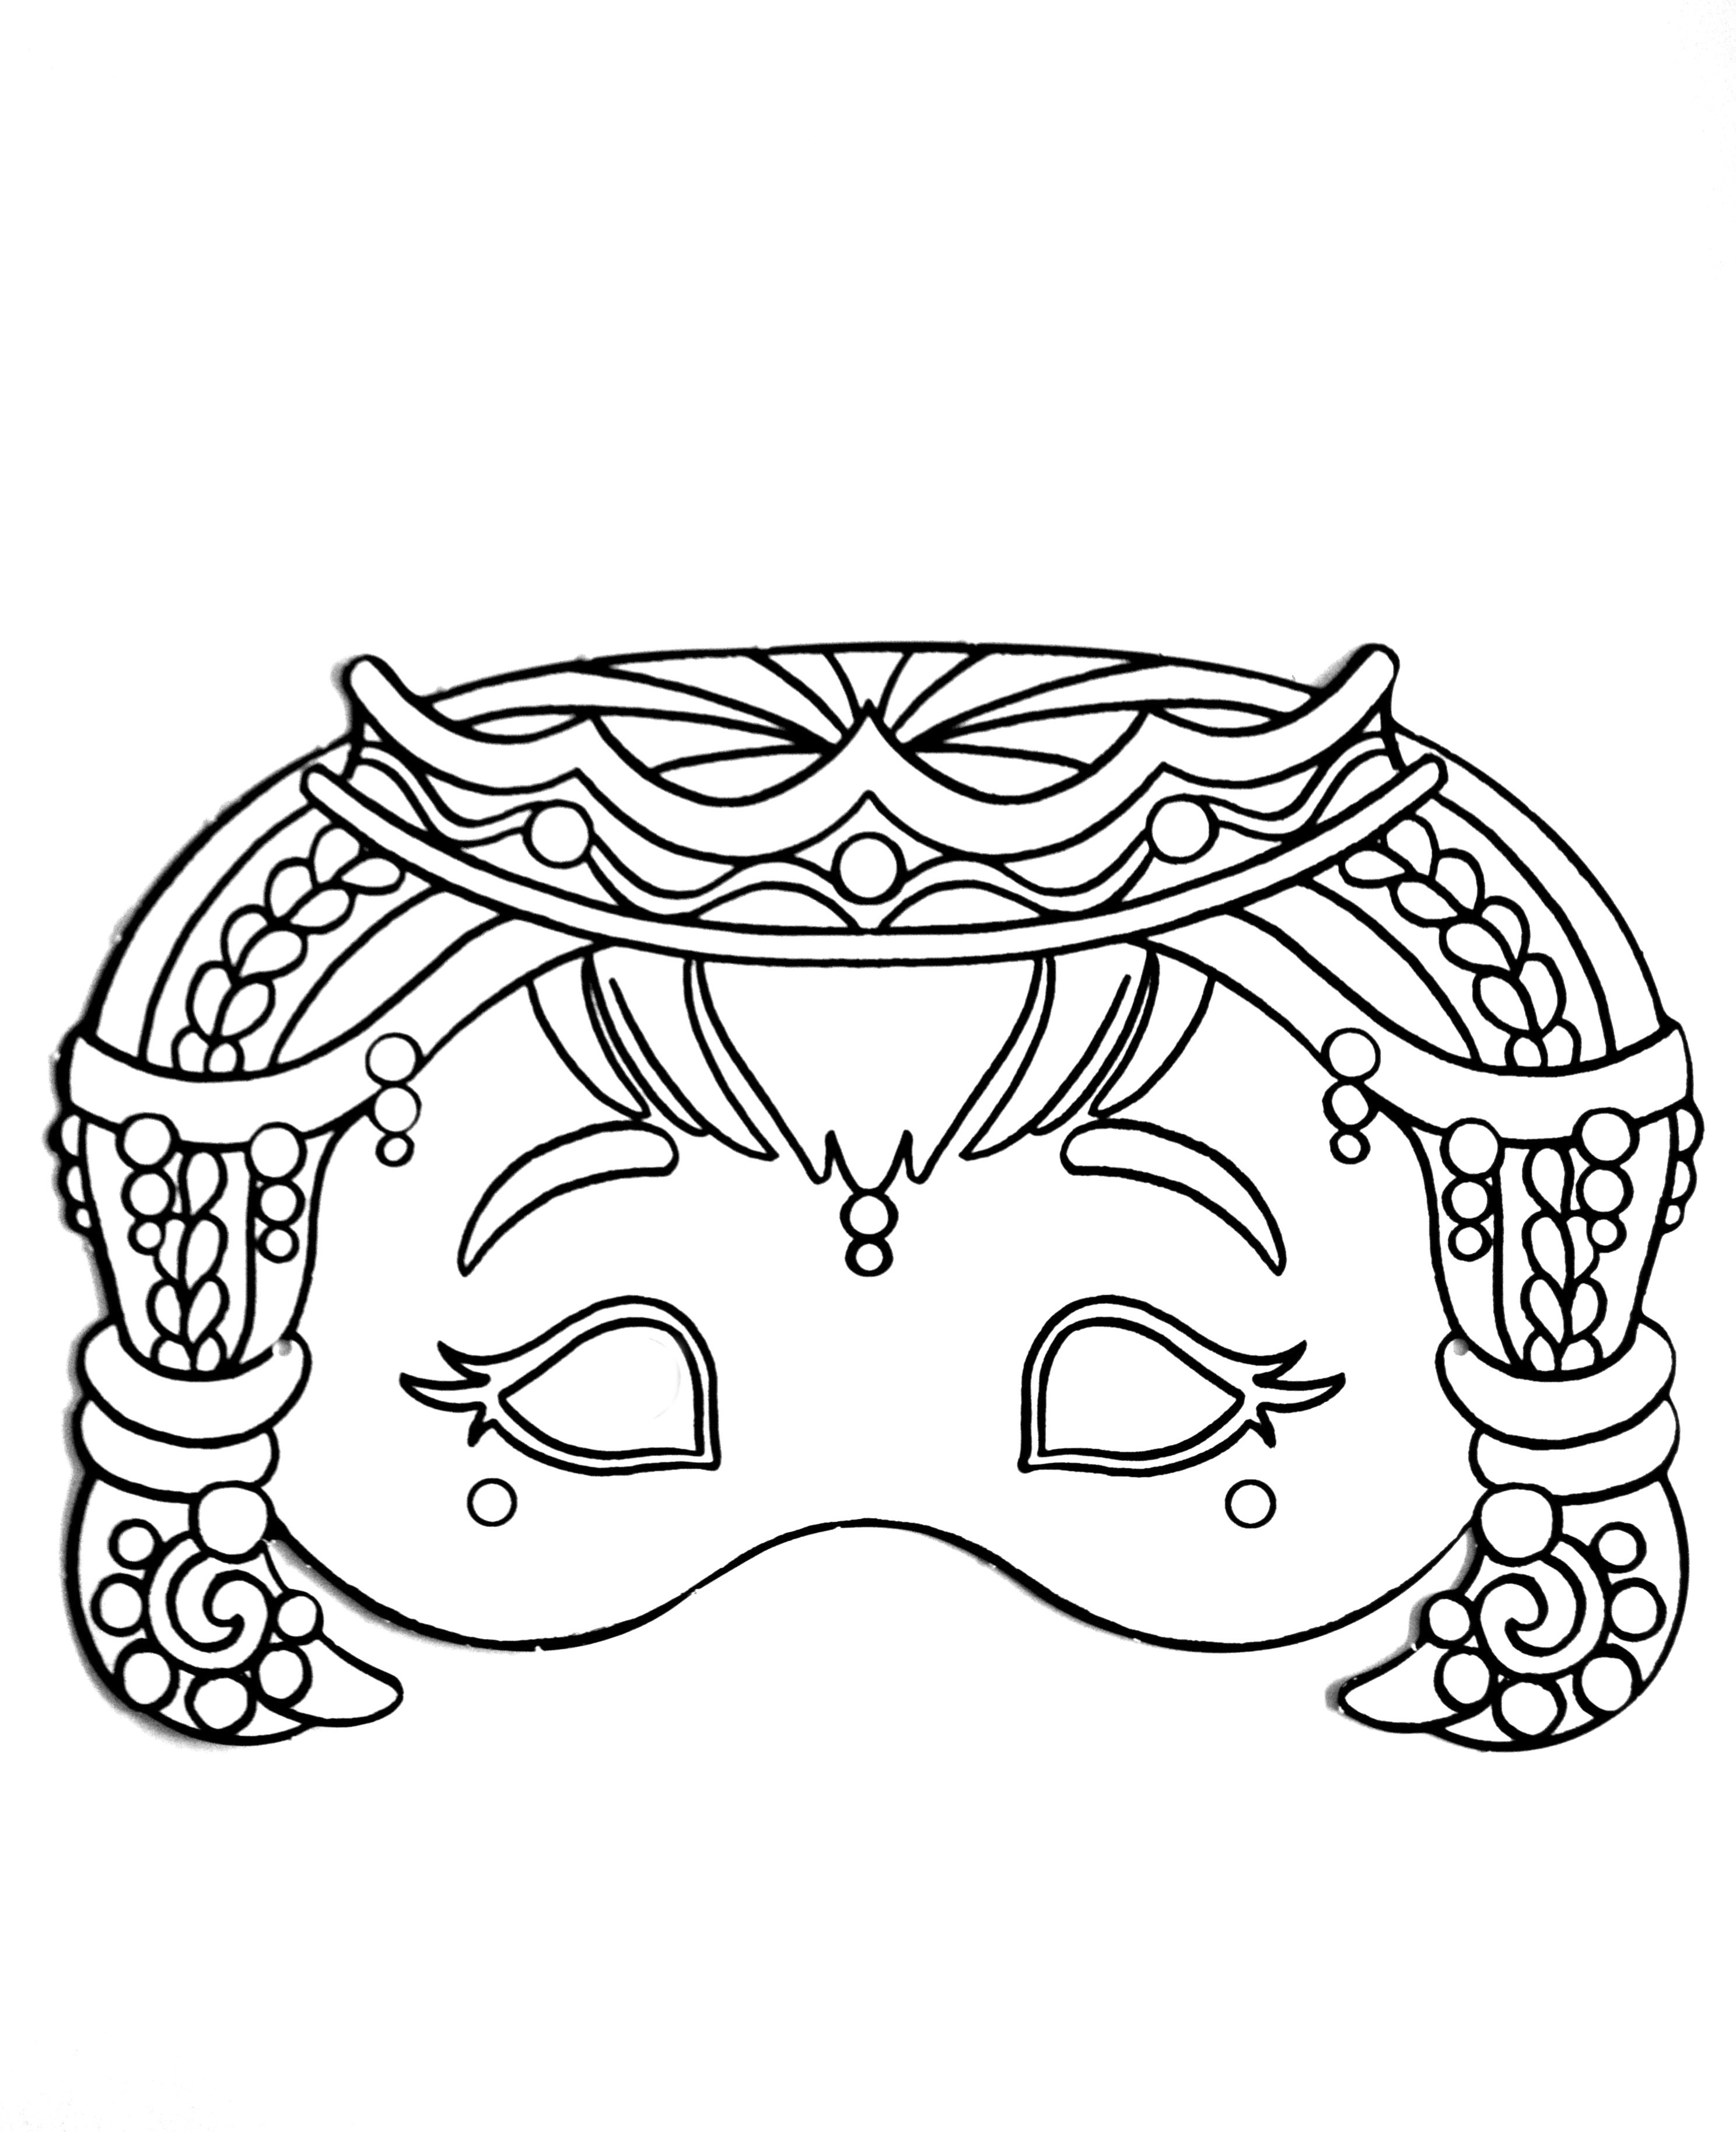 Carnival Mask For Kid 4 Masks Coloring Pages For Kids To